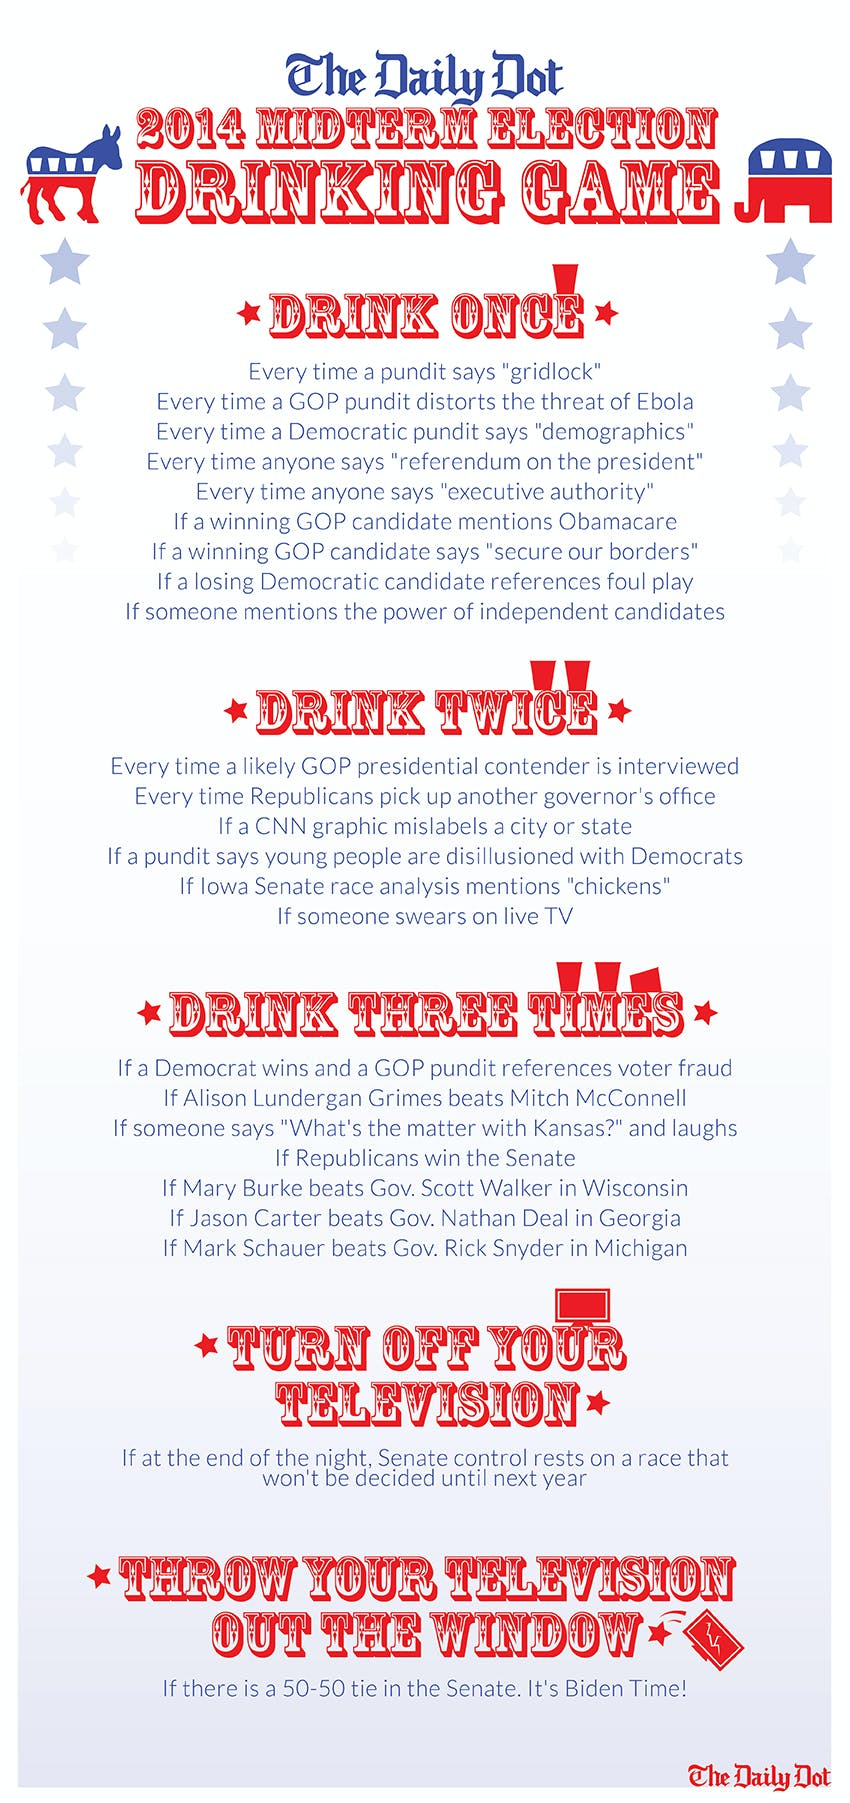 Daily Dot 2014 Midterm Elections Drinking Game